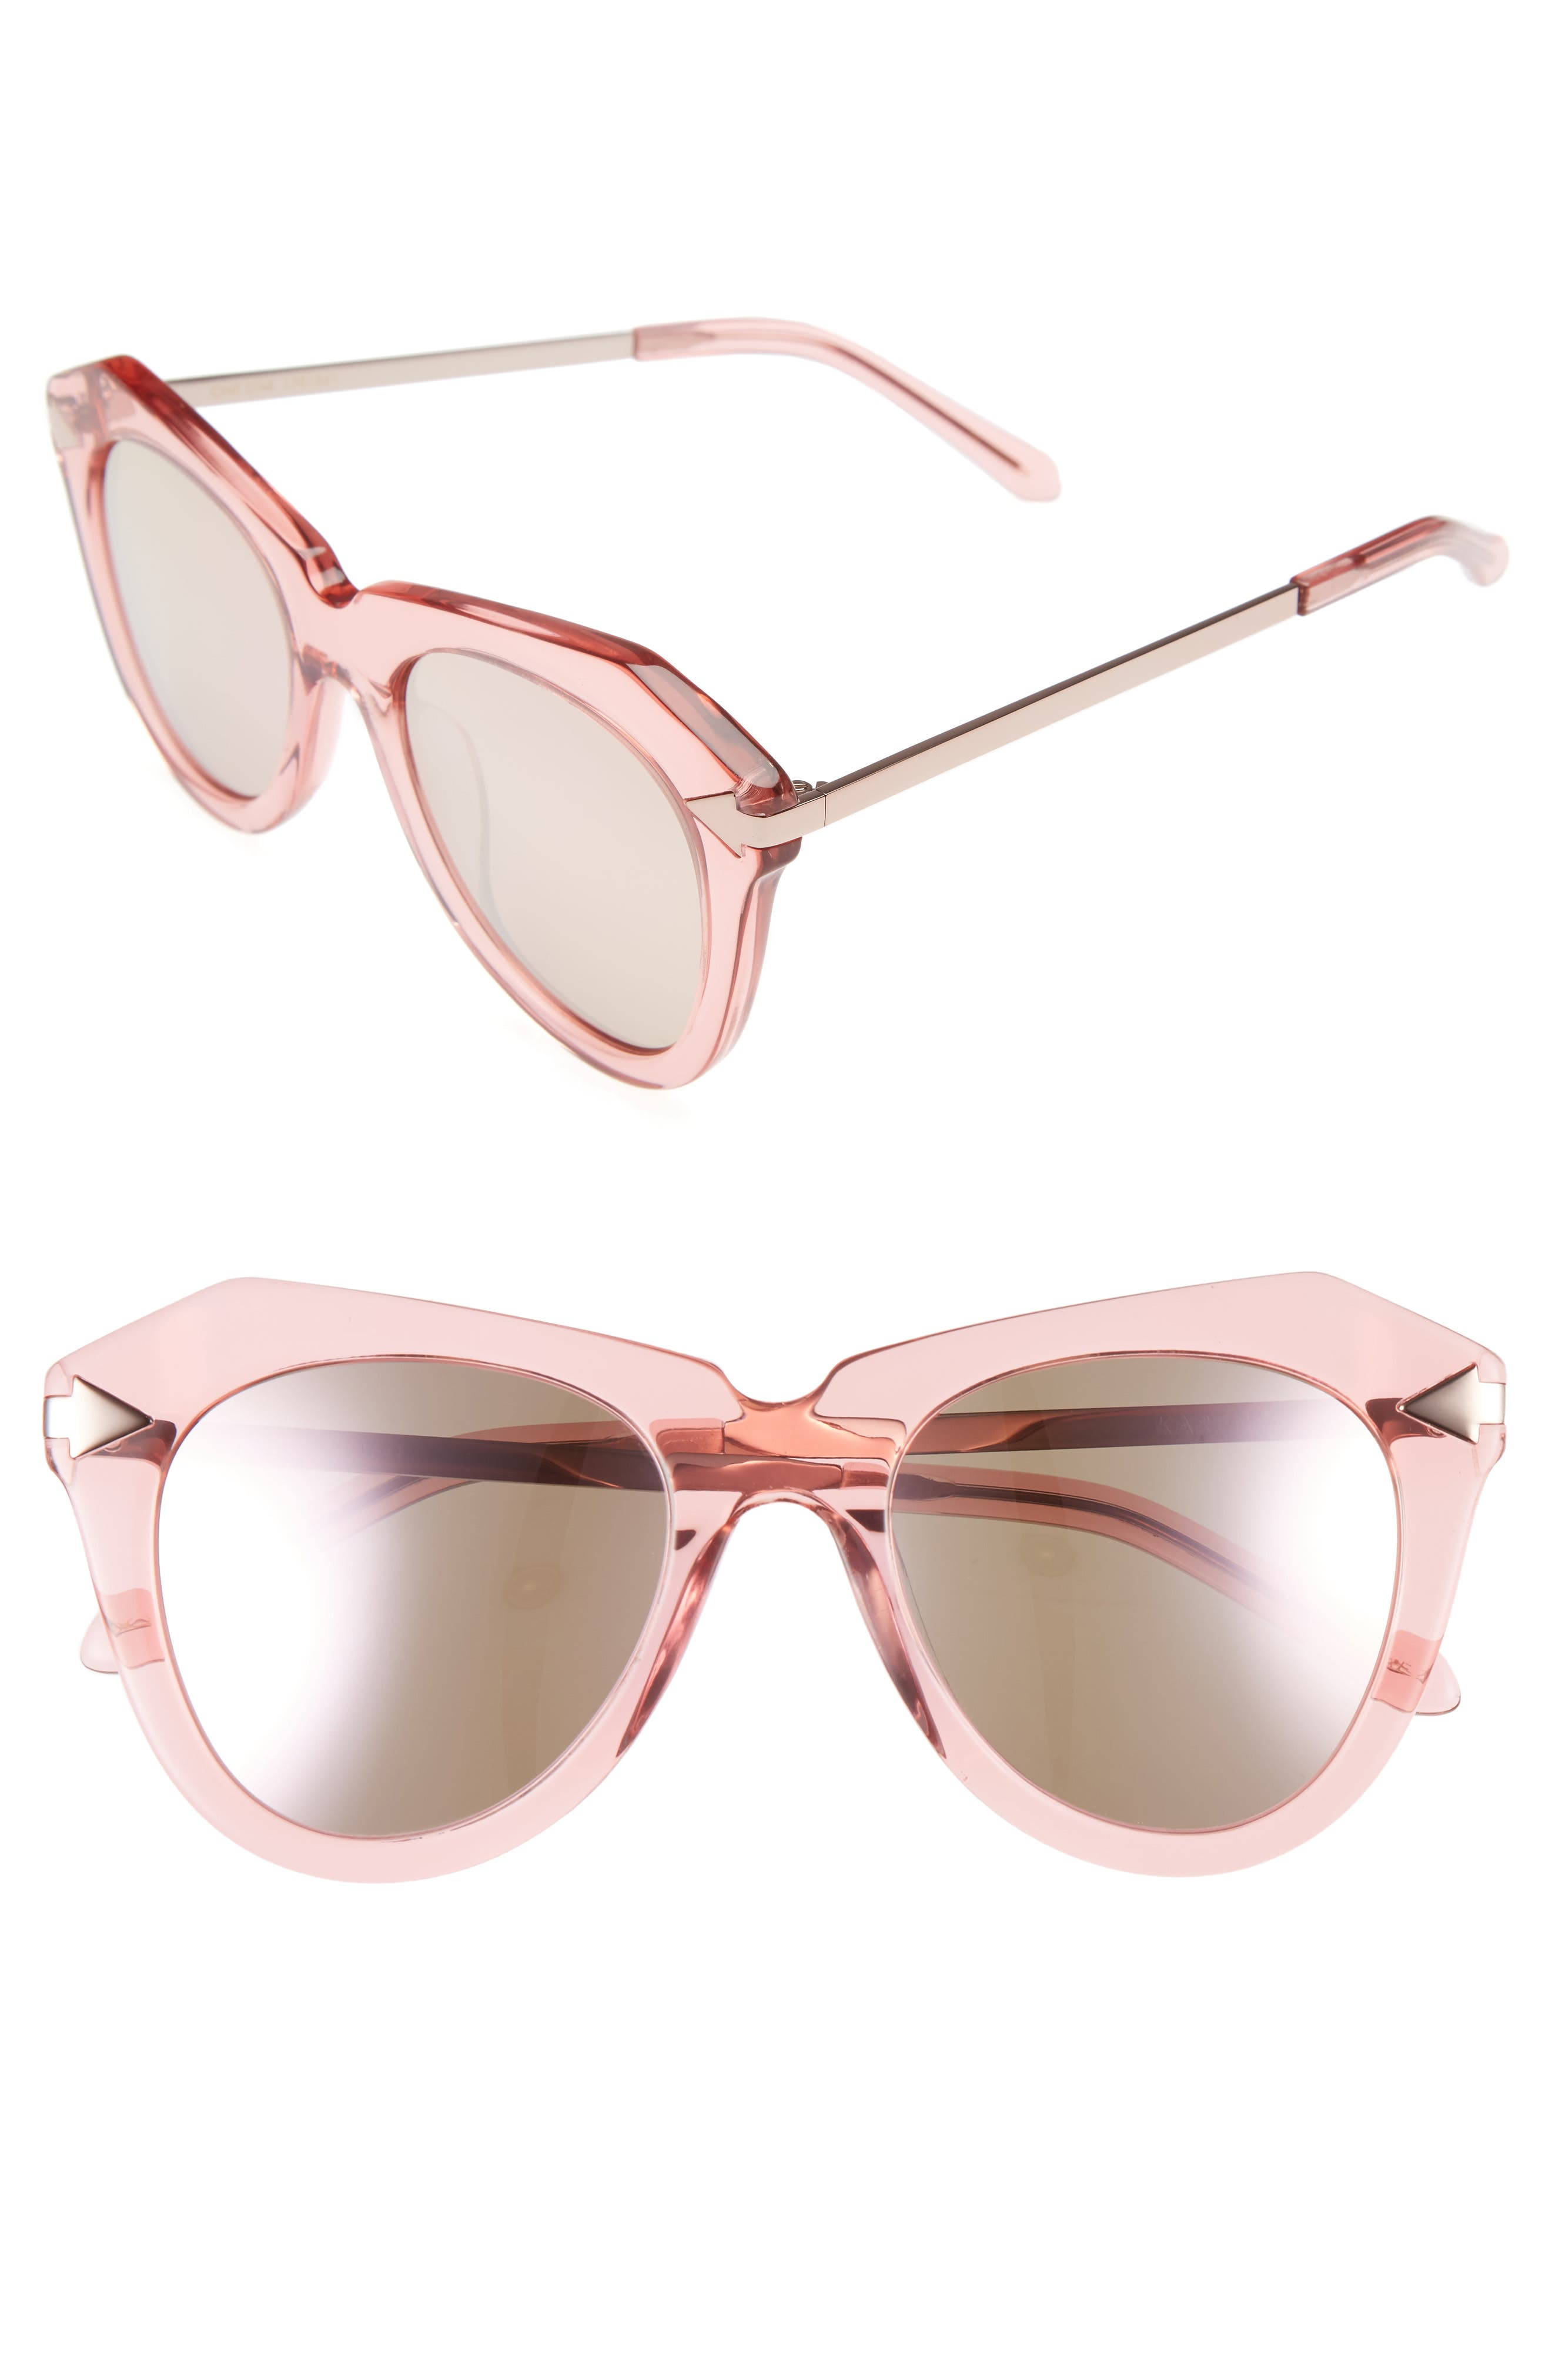 Karen Walker One Star 50mm Retro Sunglasses